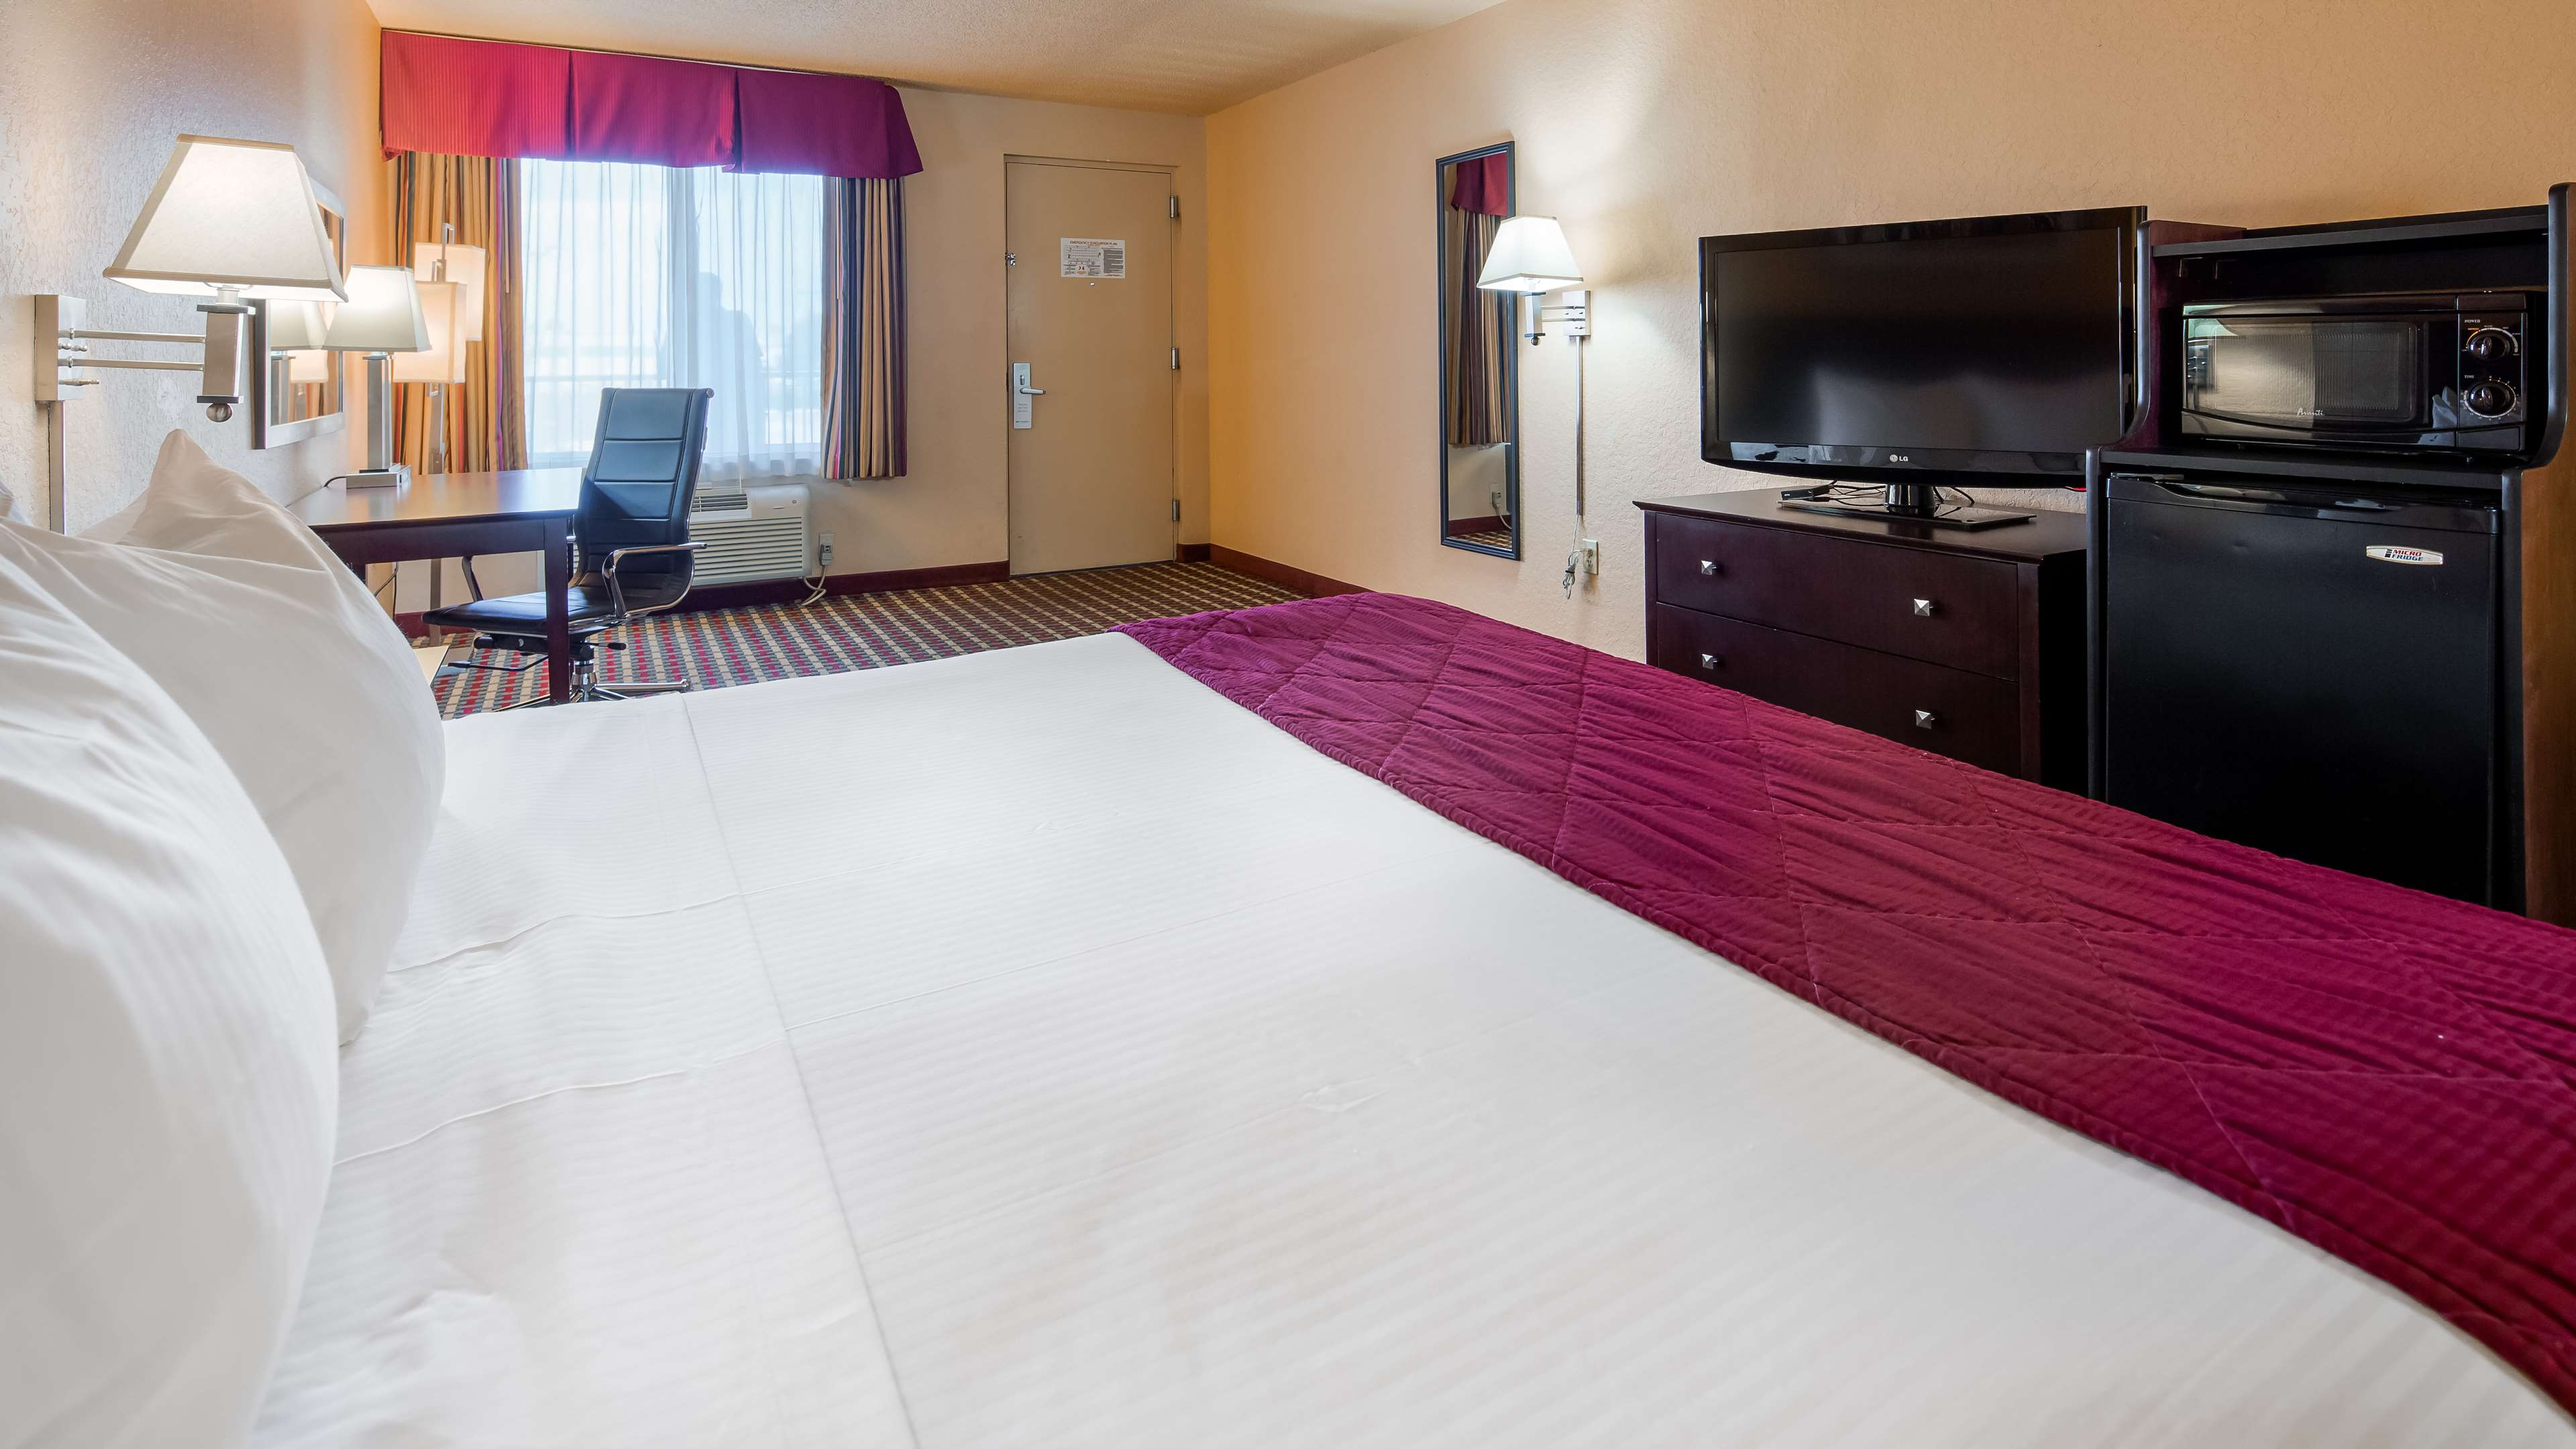 Best Western of Clewiston image 11